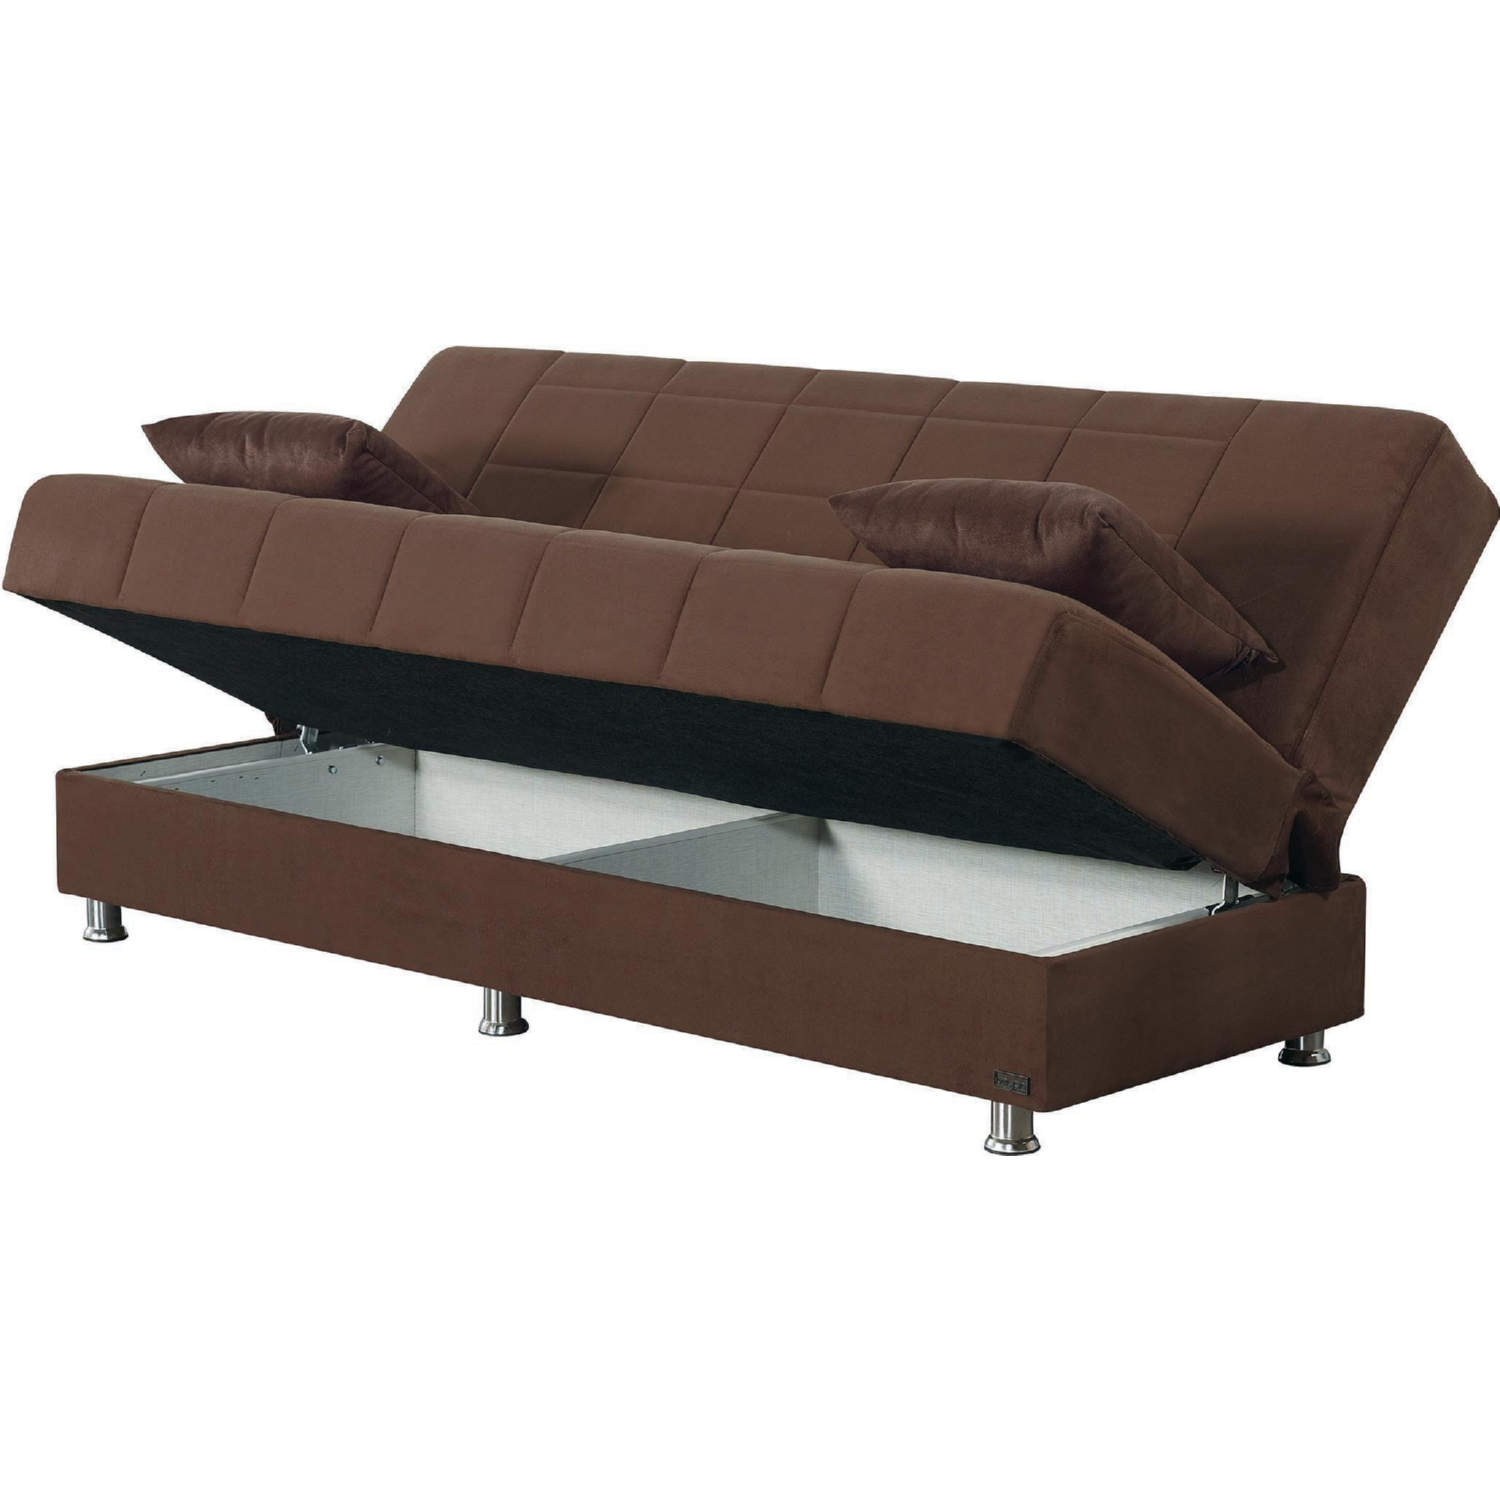 Empire Sb Hamilton Hamilton Convertible Sleeper Sofa In Brown Microfiber